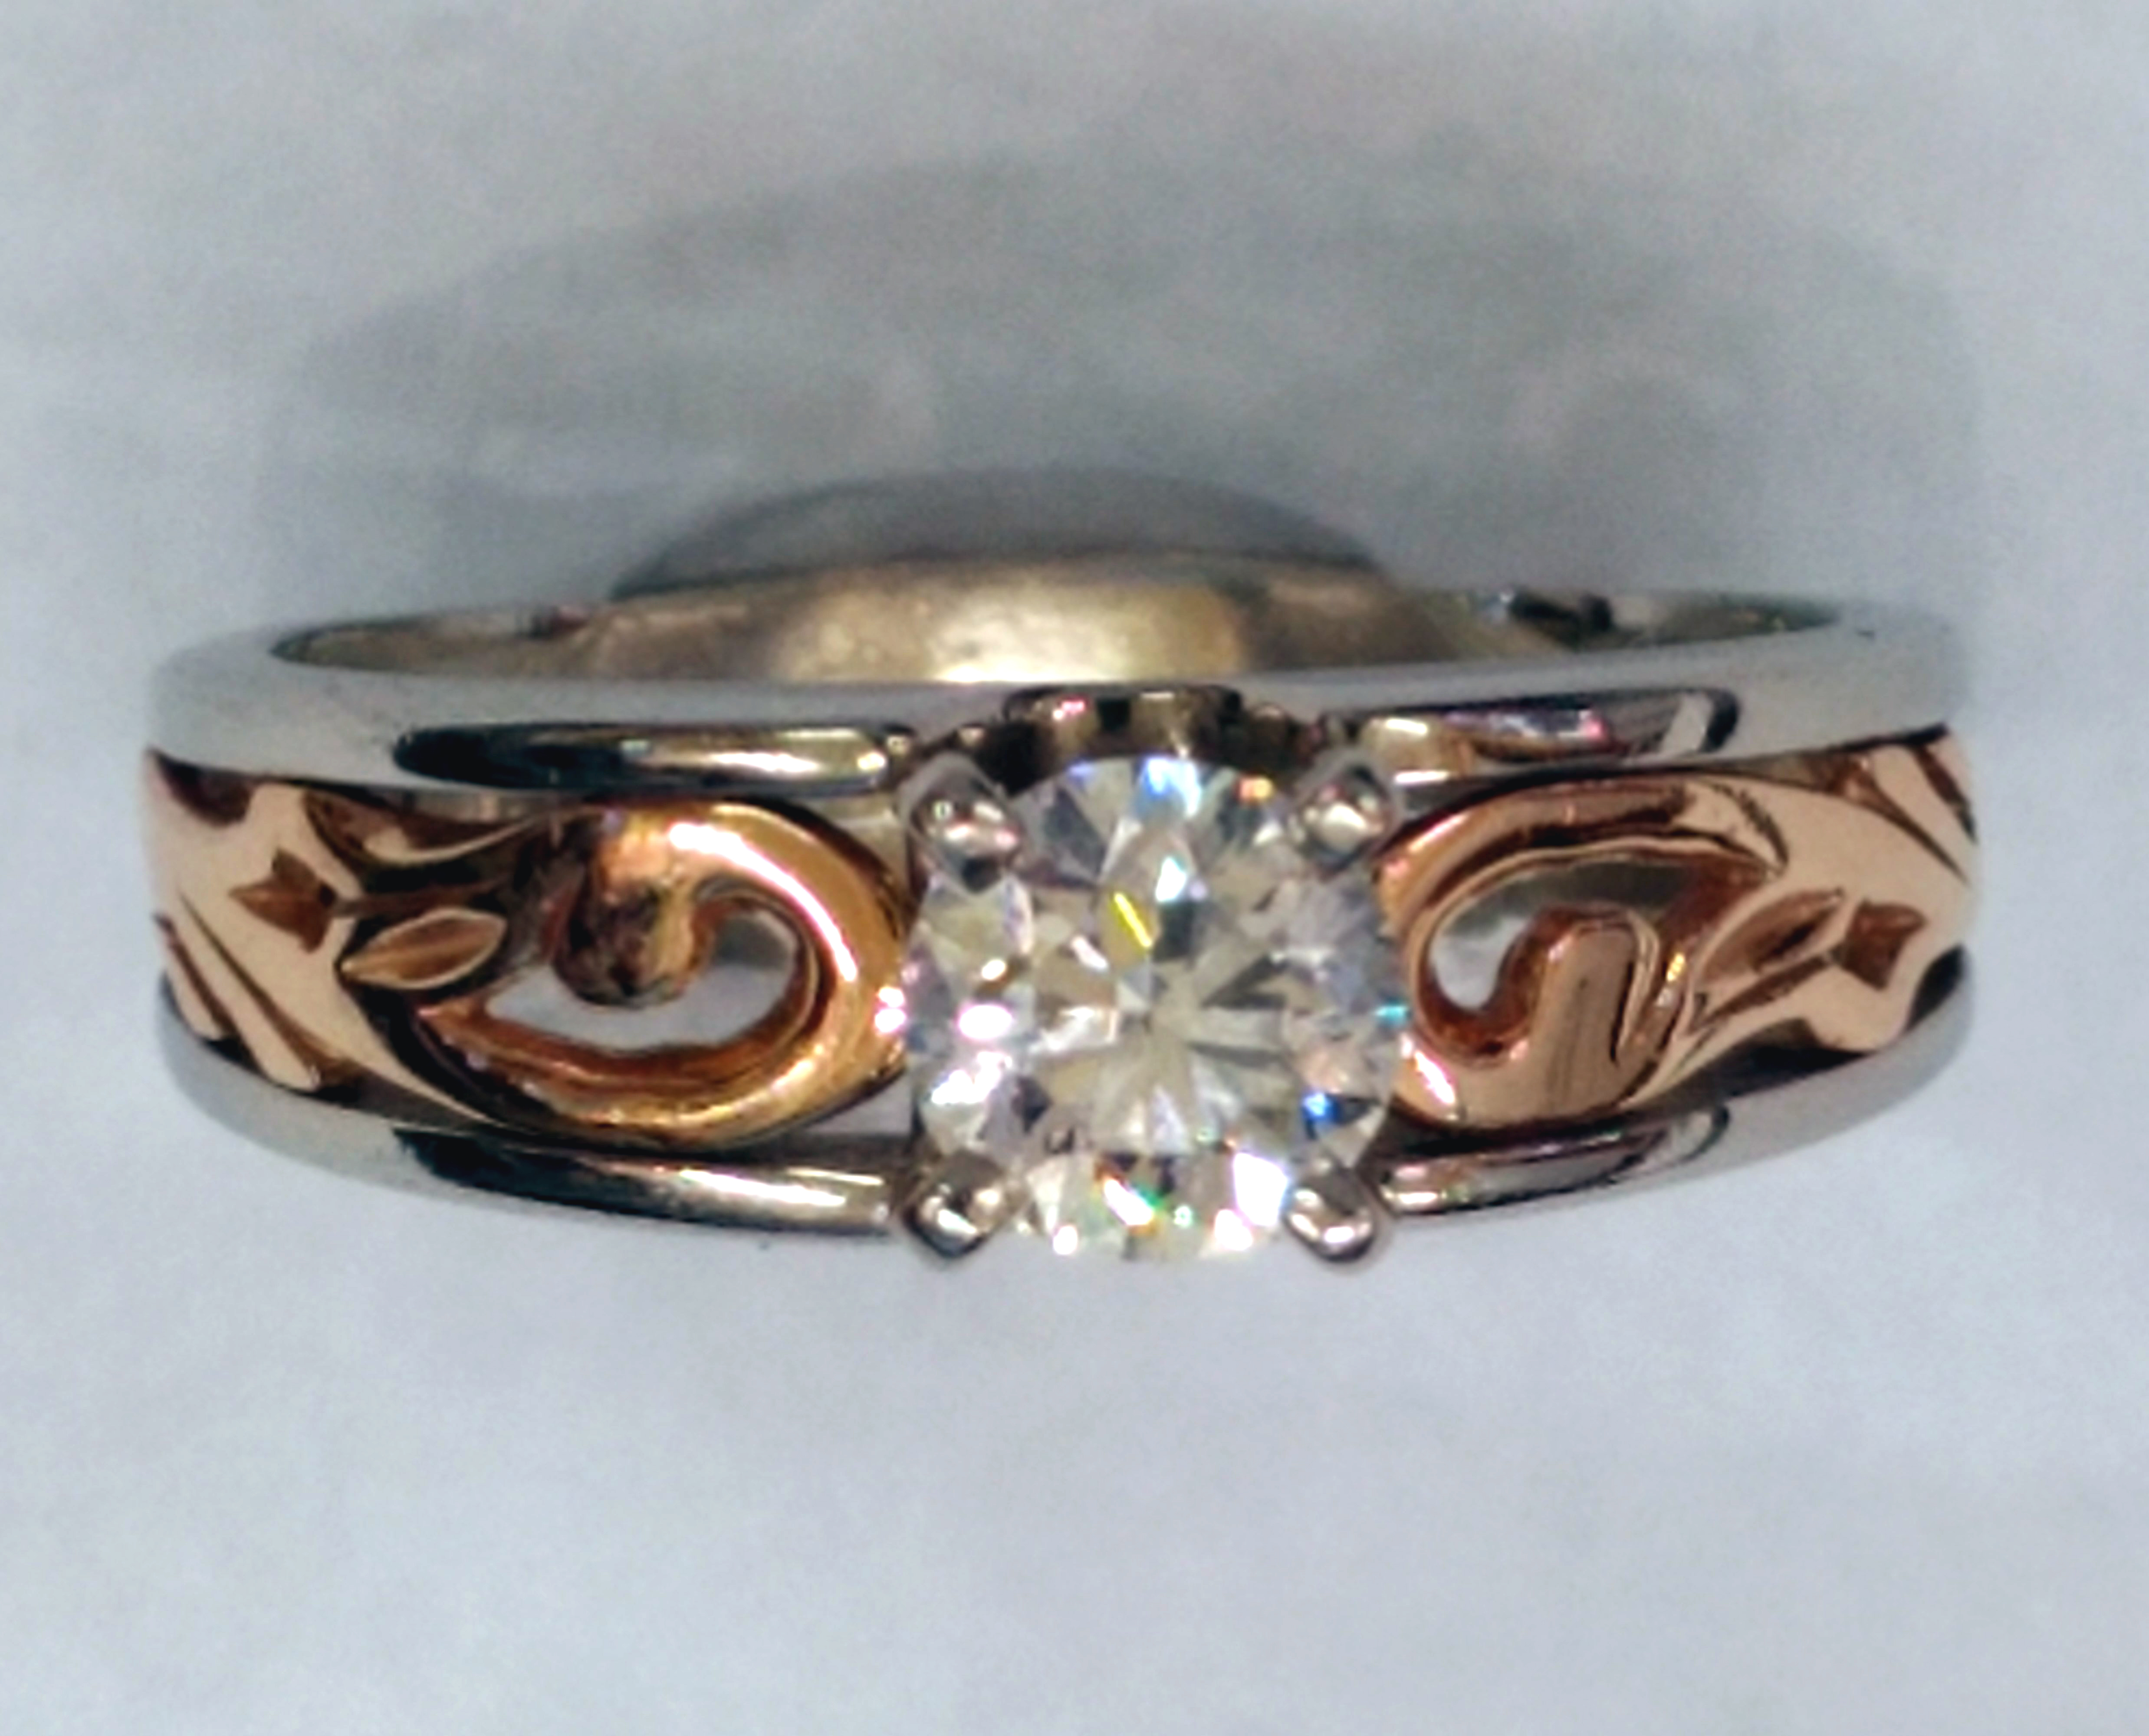 Na Hoku 0.55 Carat Brilliant Diamond Solitaire 14kt Two-Tone Gold Ring - Size 9